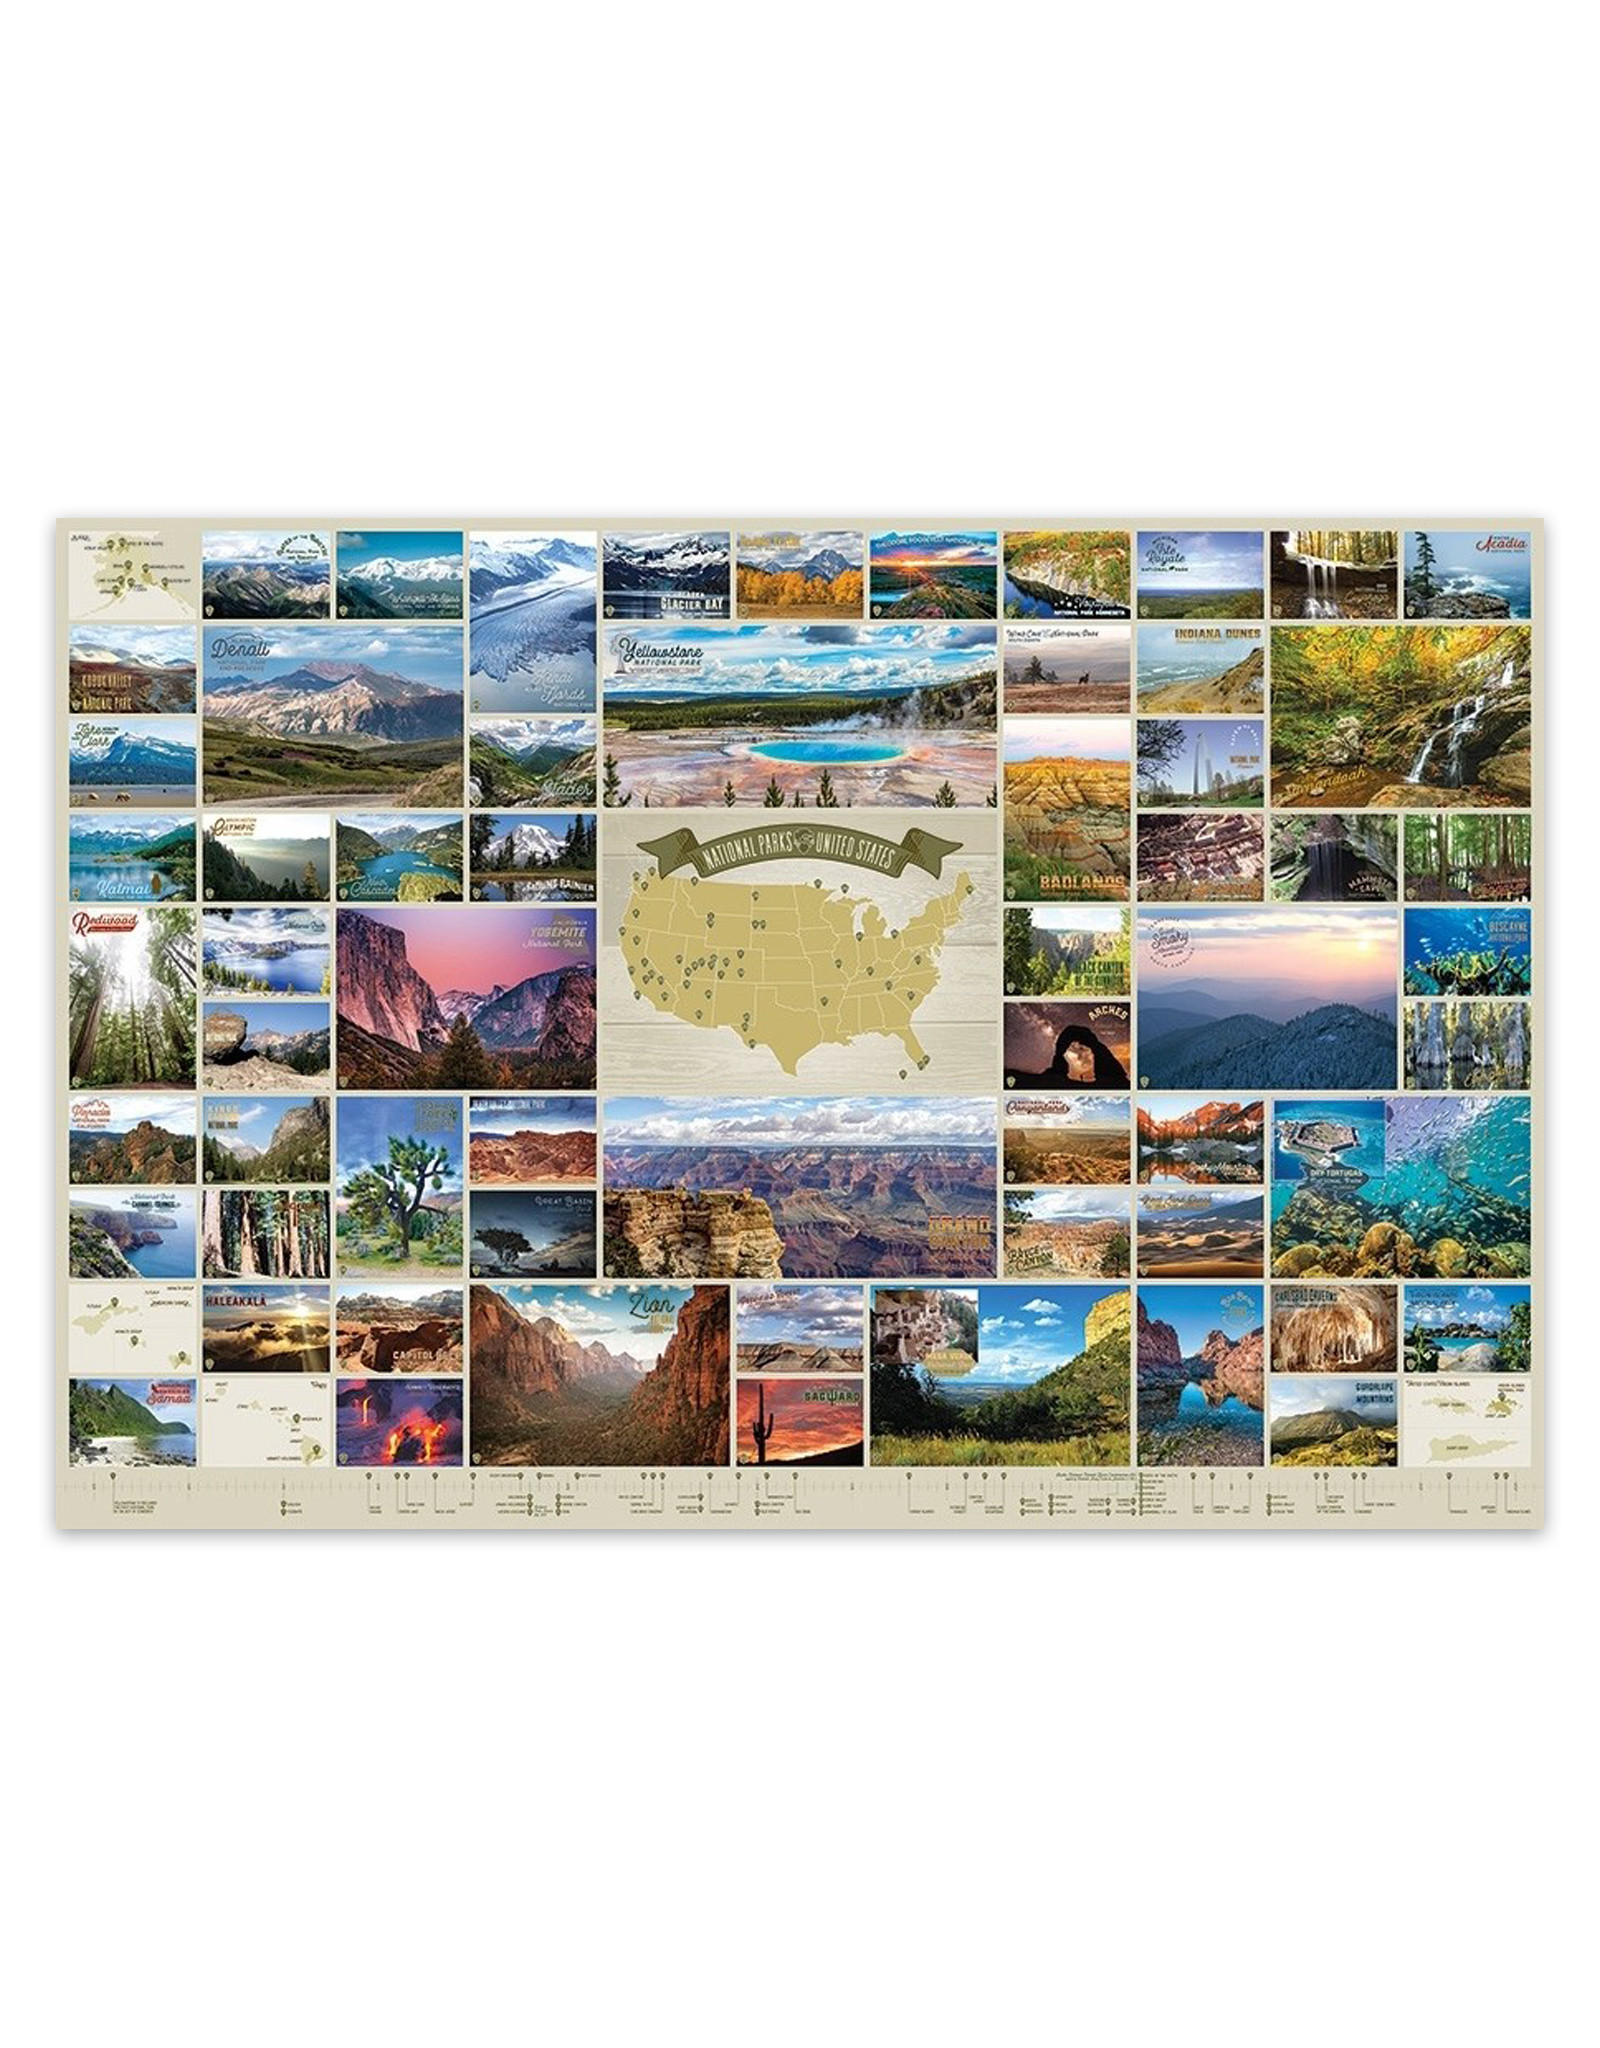 National Parks of the United States Puzzle